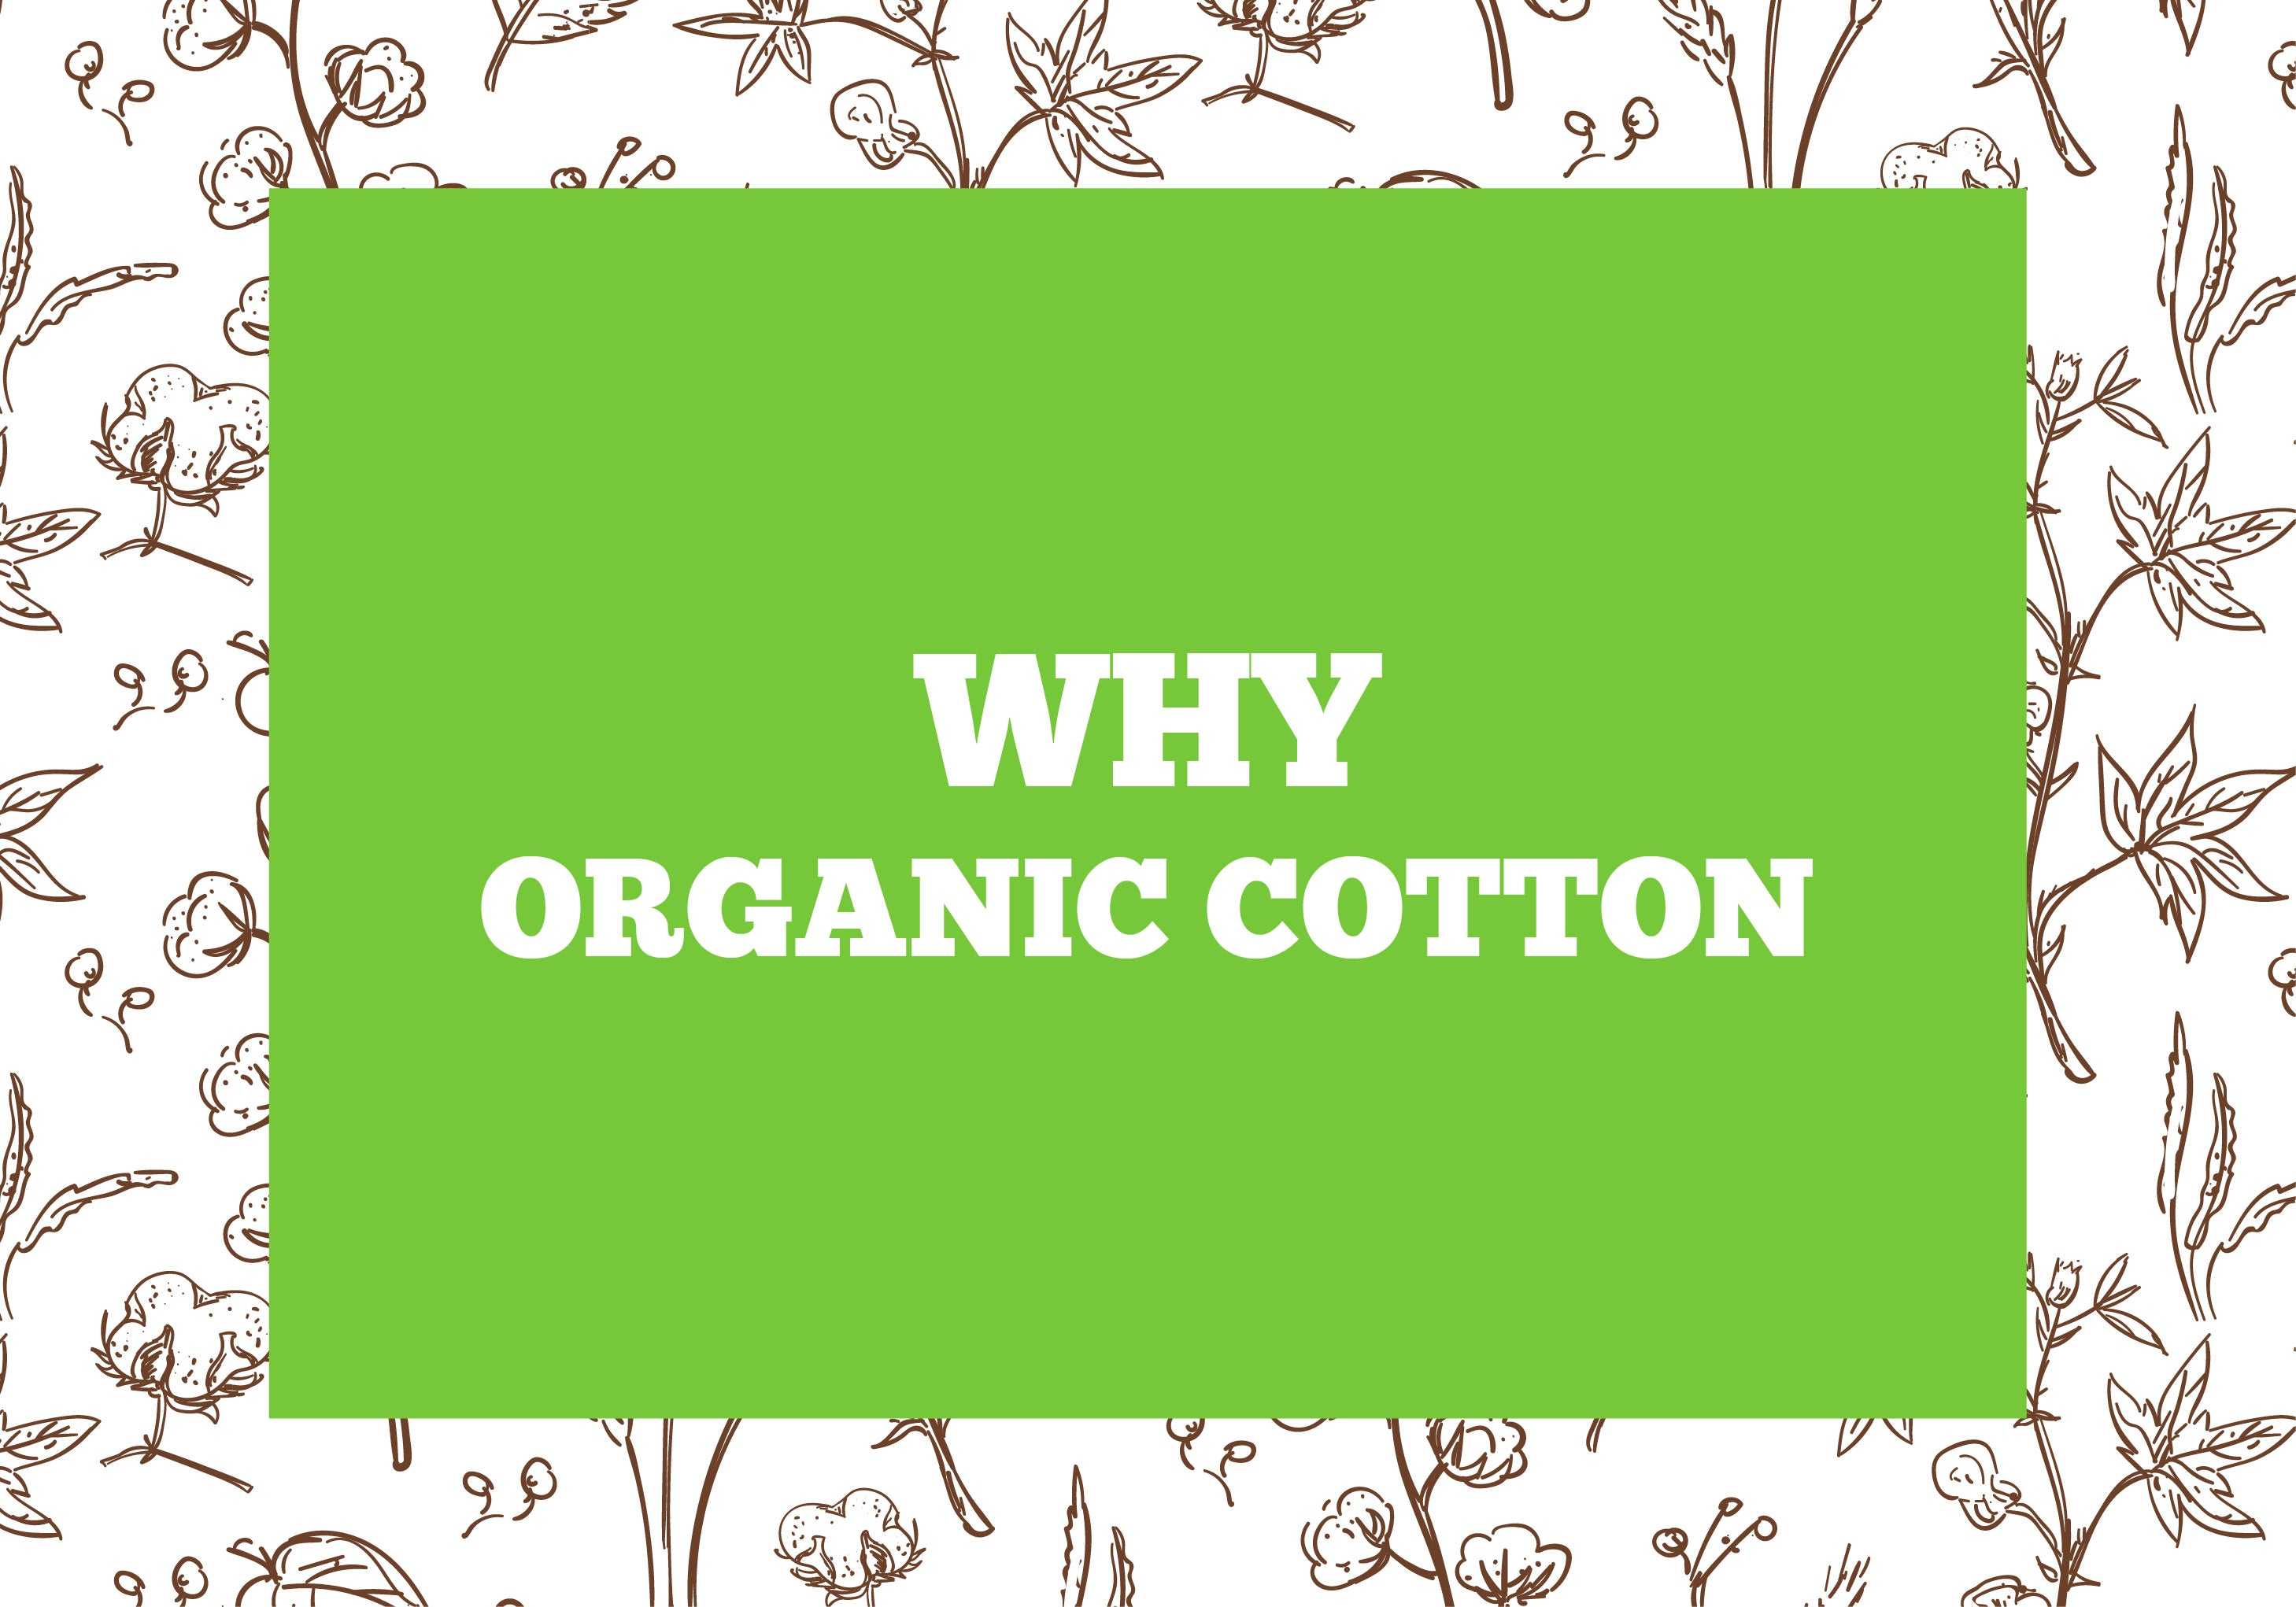 Why Organic Cotton